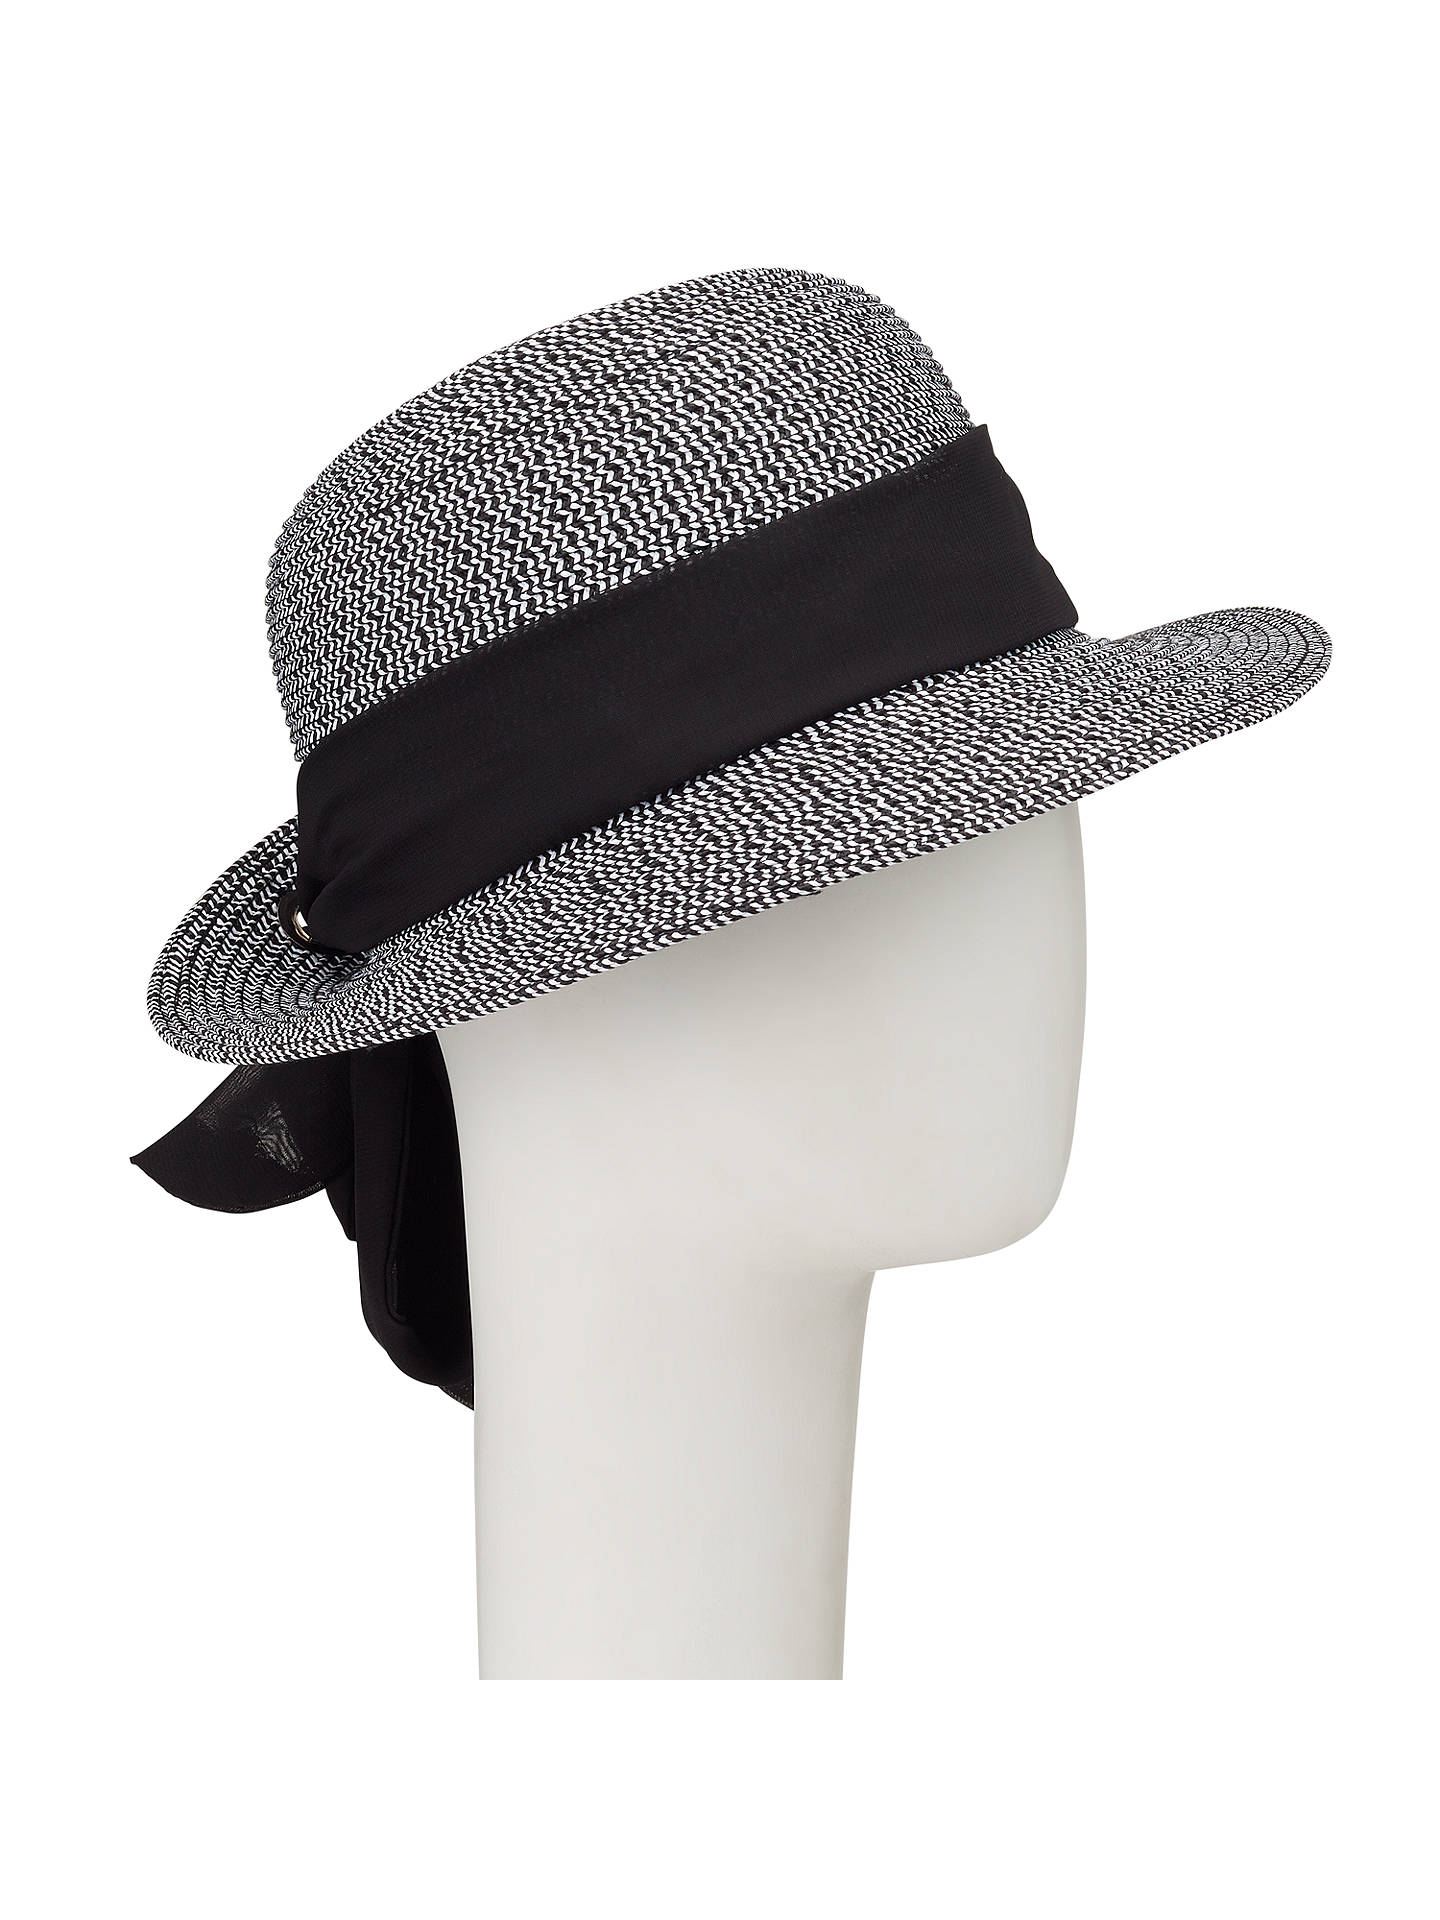 BuyJohn Lewis Turn Up Brim Packable Tie Detail Fedora Hat, Black Mix Online at johnlewis.com